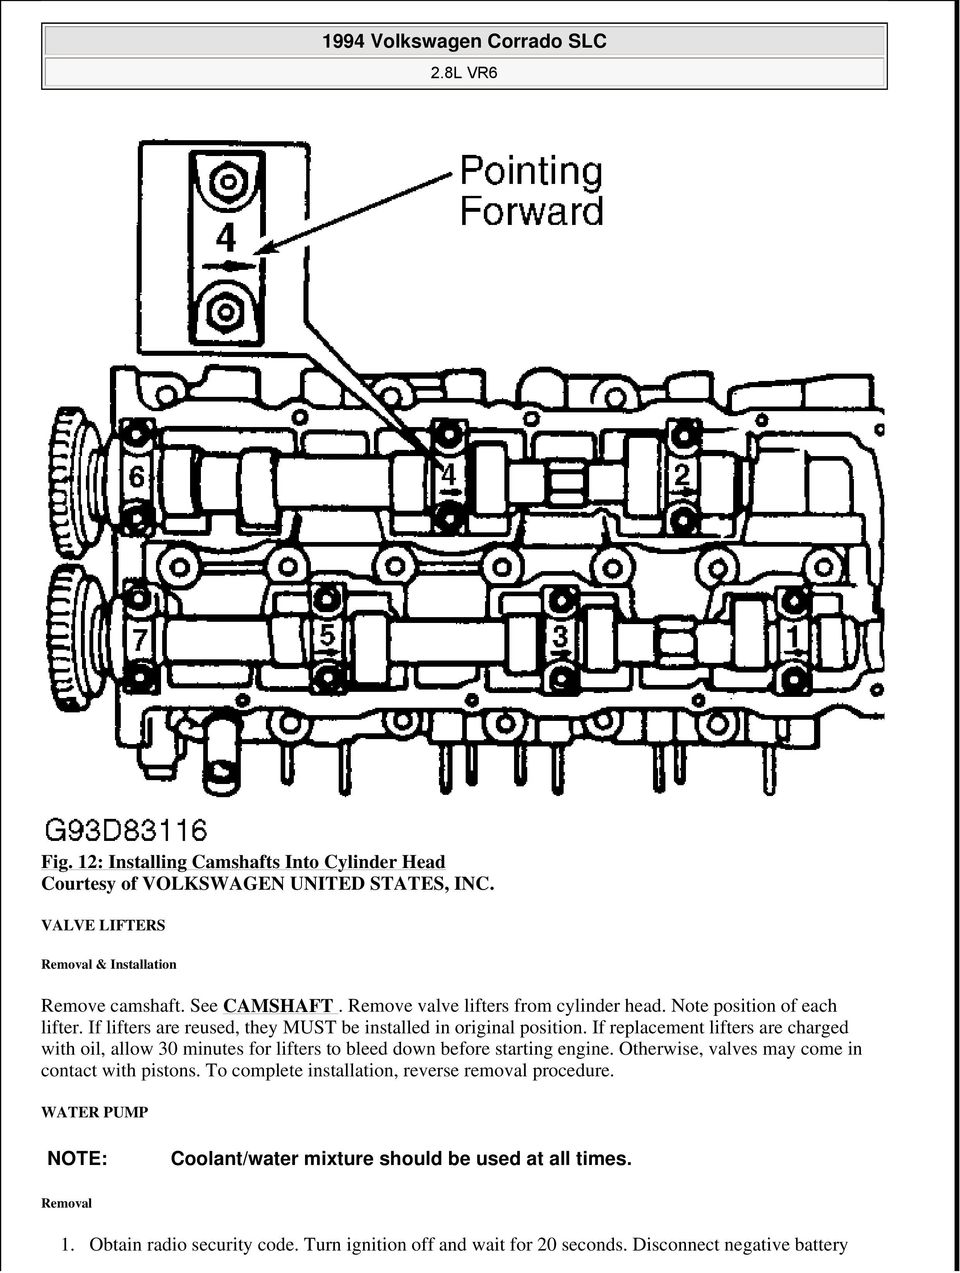 1994 Volkswagen Corrado Slc Pdf Vr6 Engine Timing Diagram If Replacement Lifters Are Charged With Oil Allow 30 Minutes For To Bleed Down